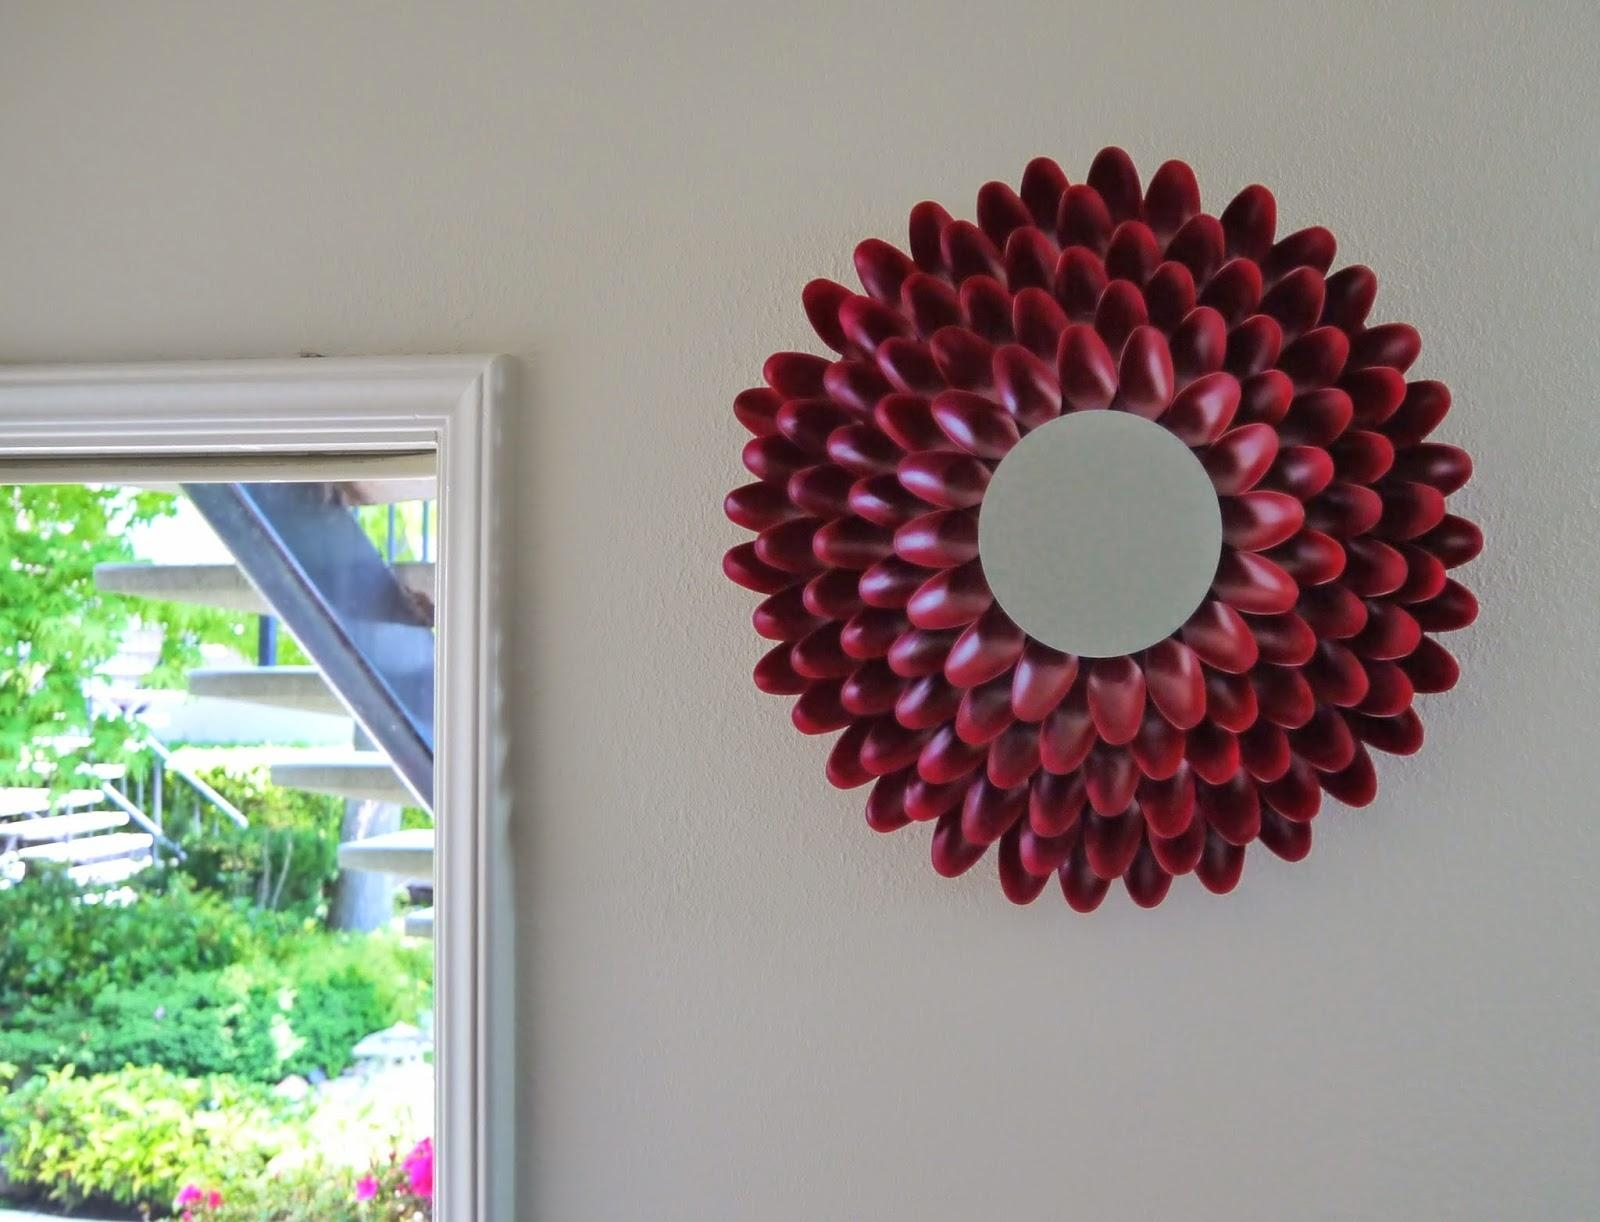 Diy Addiction: Mirror Wall Art – Chrysanthemum Flower Within Diy Mirror Wall Art (Image 7 of 20)